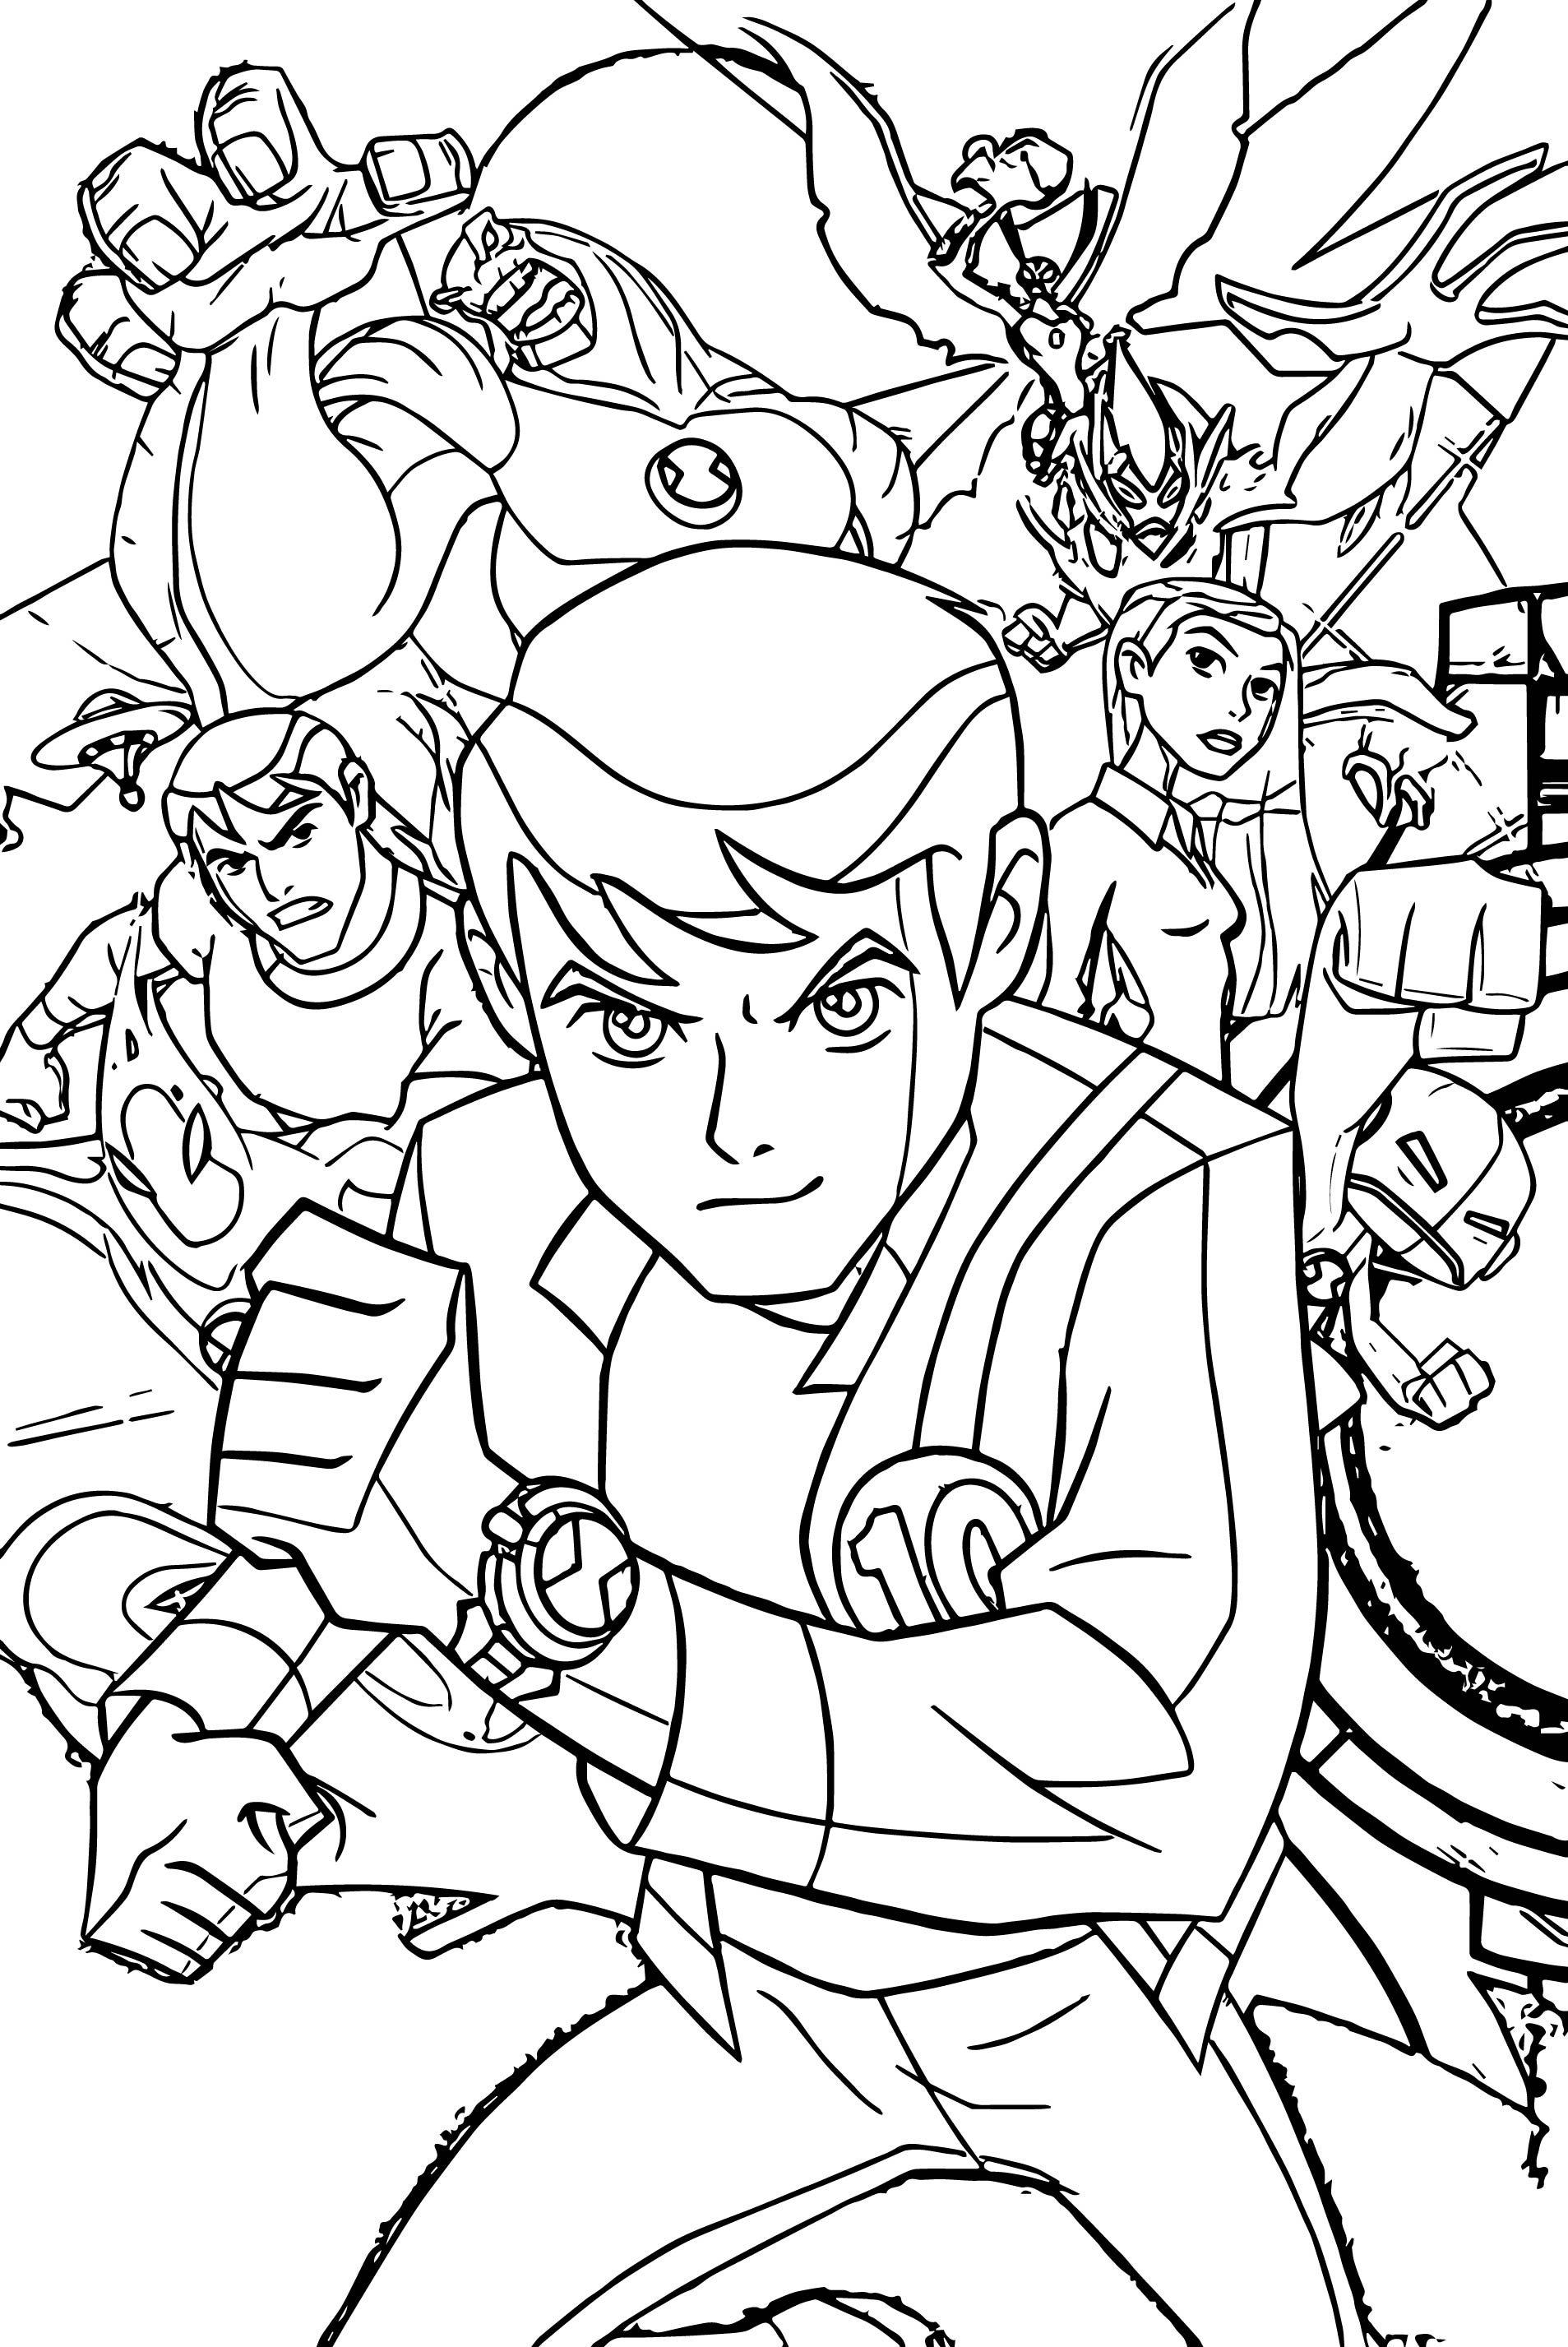 Superb Ben Coloring Pages With Ben Ten Coloring Pages And Ben 10 Coloring Pages Pdf Alien Ben